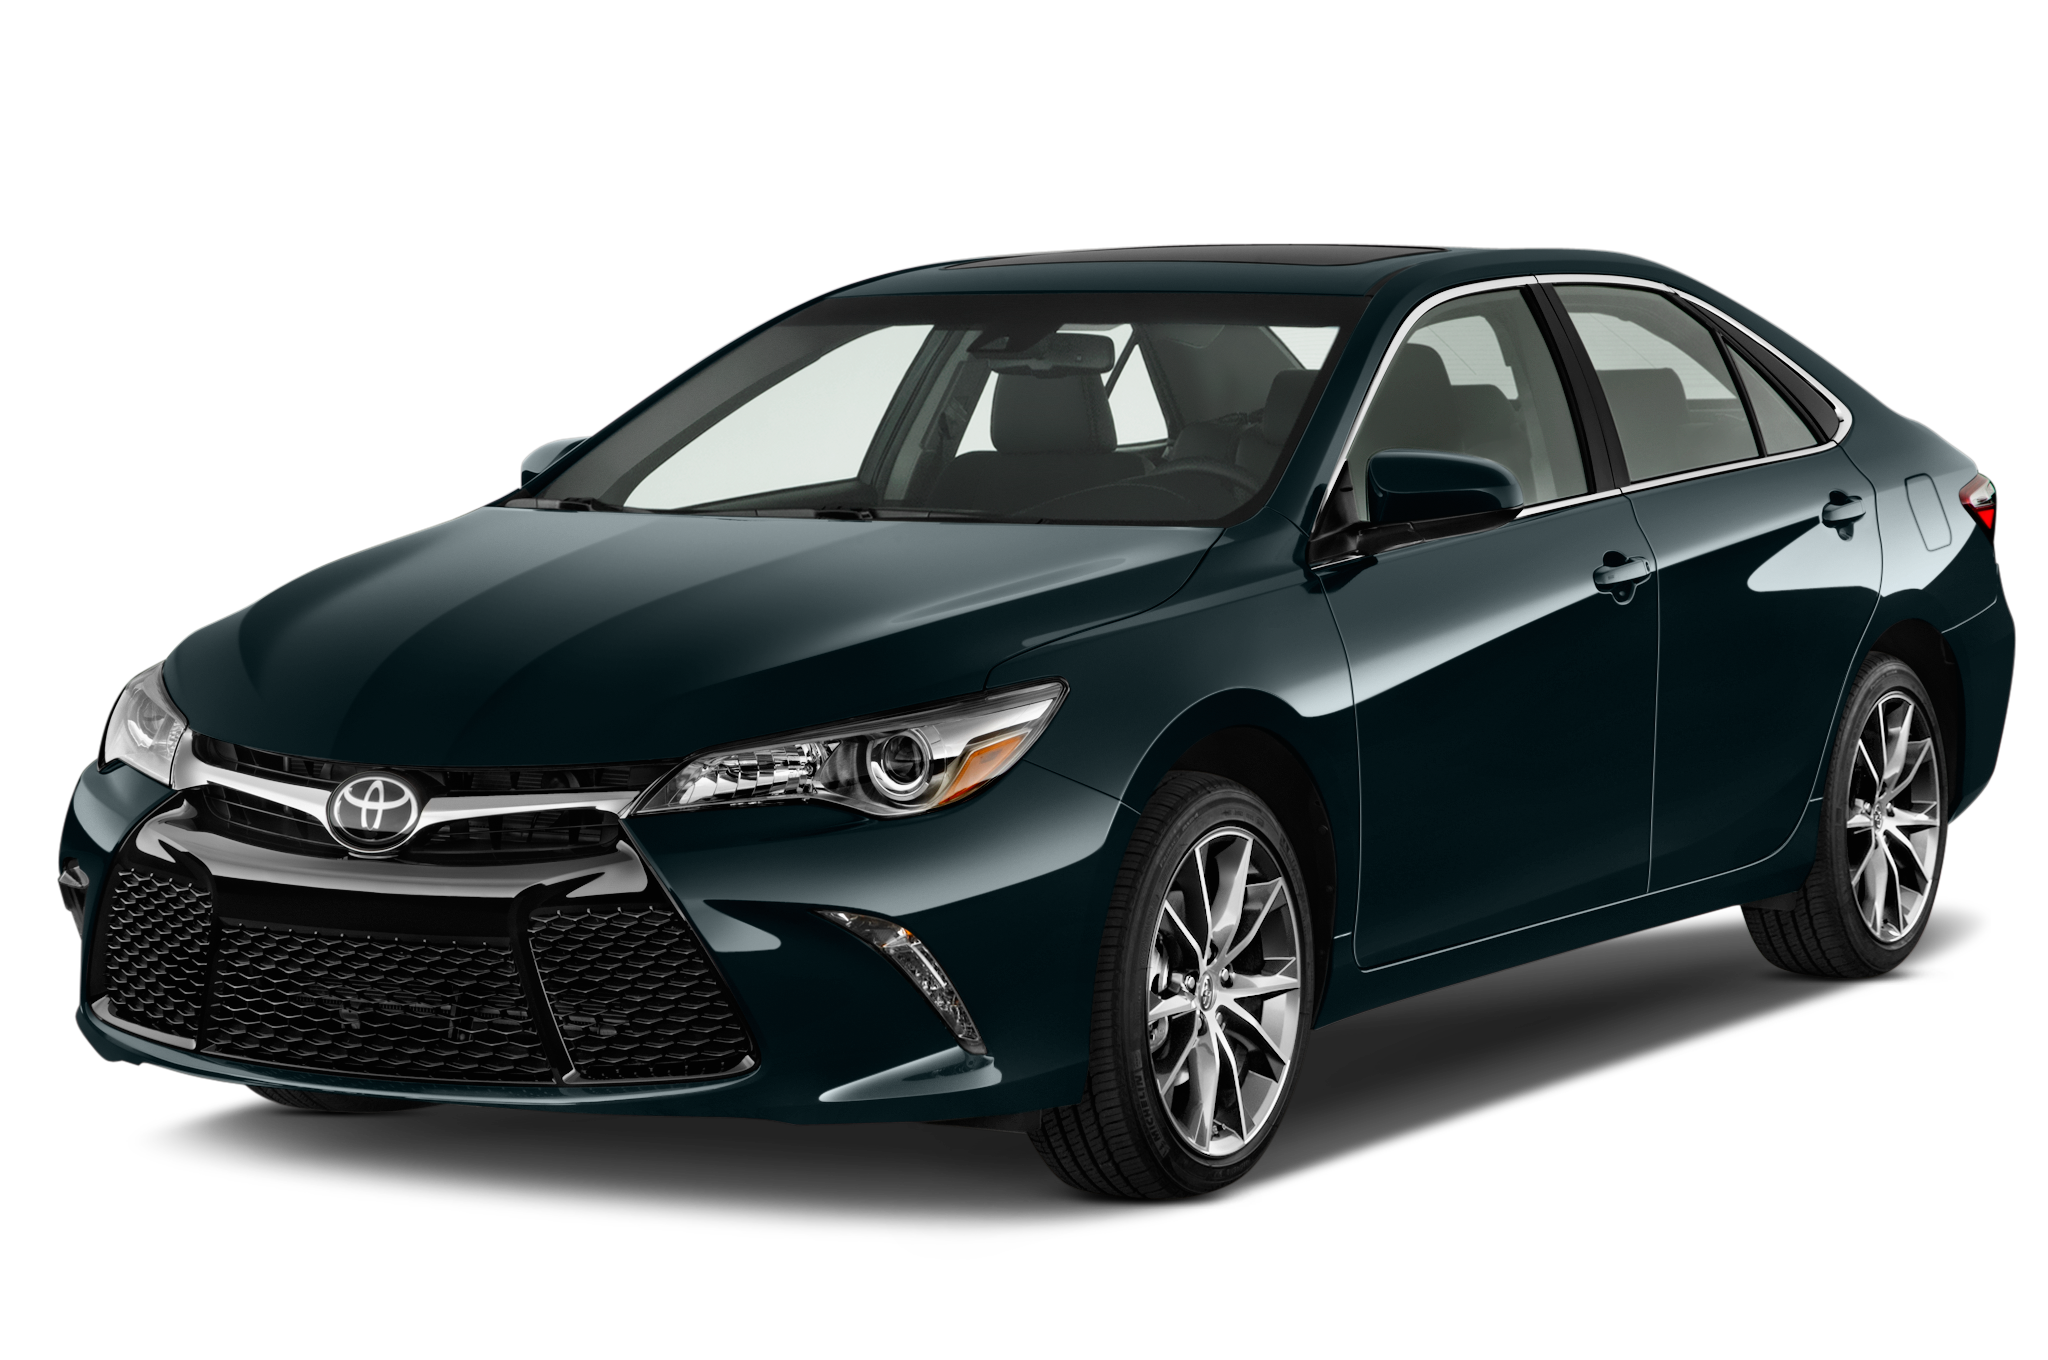 2016 toyota camry 3 5 auto v6 xse specs and features msn autos. Black Bedroom Furniture Sets. Home Design Ideas